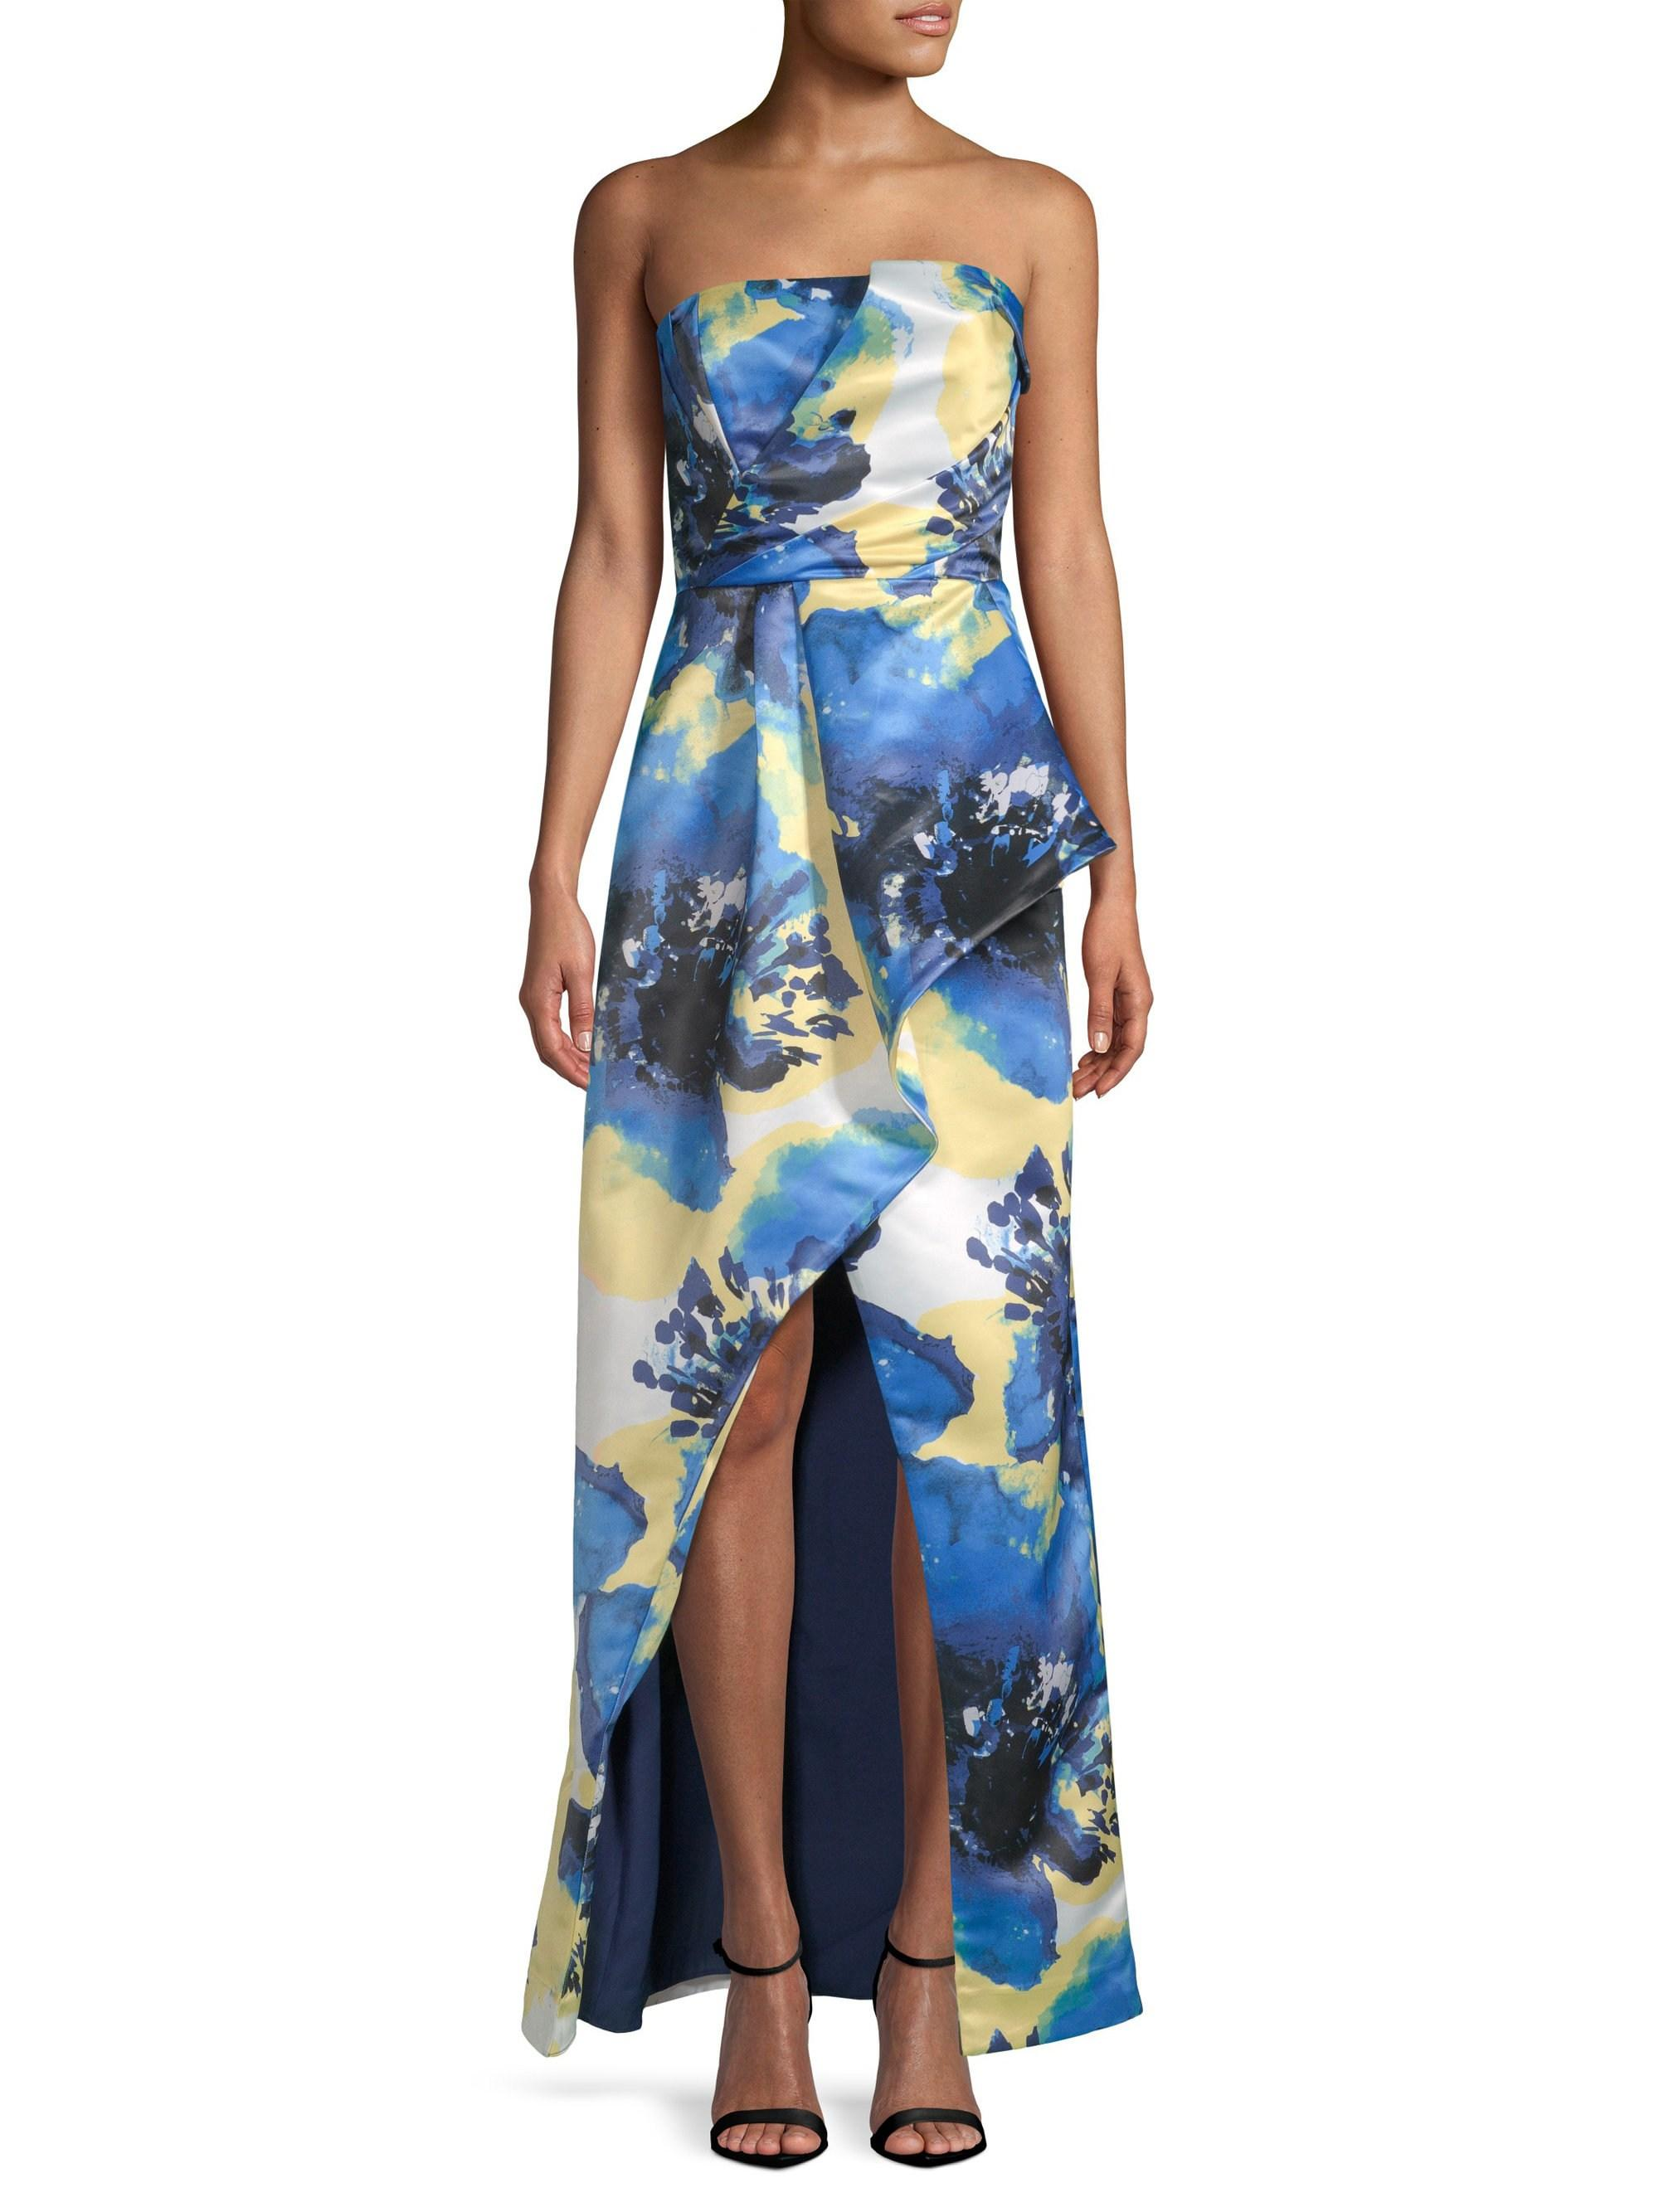 905b9308b8dc3 Parker Black Women's Whitney Strapless Gown - Peony Blue - Size 4 in ...